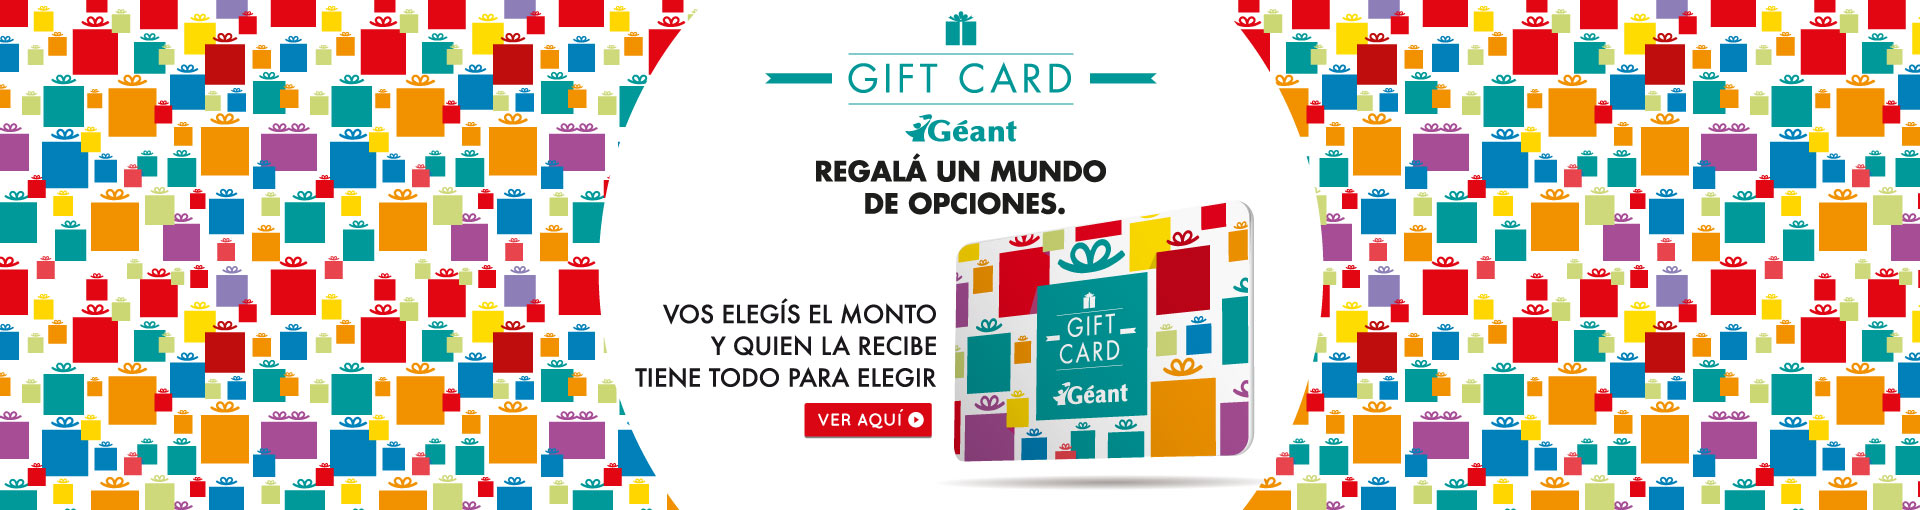 h-gift-card